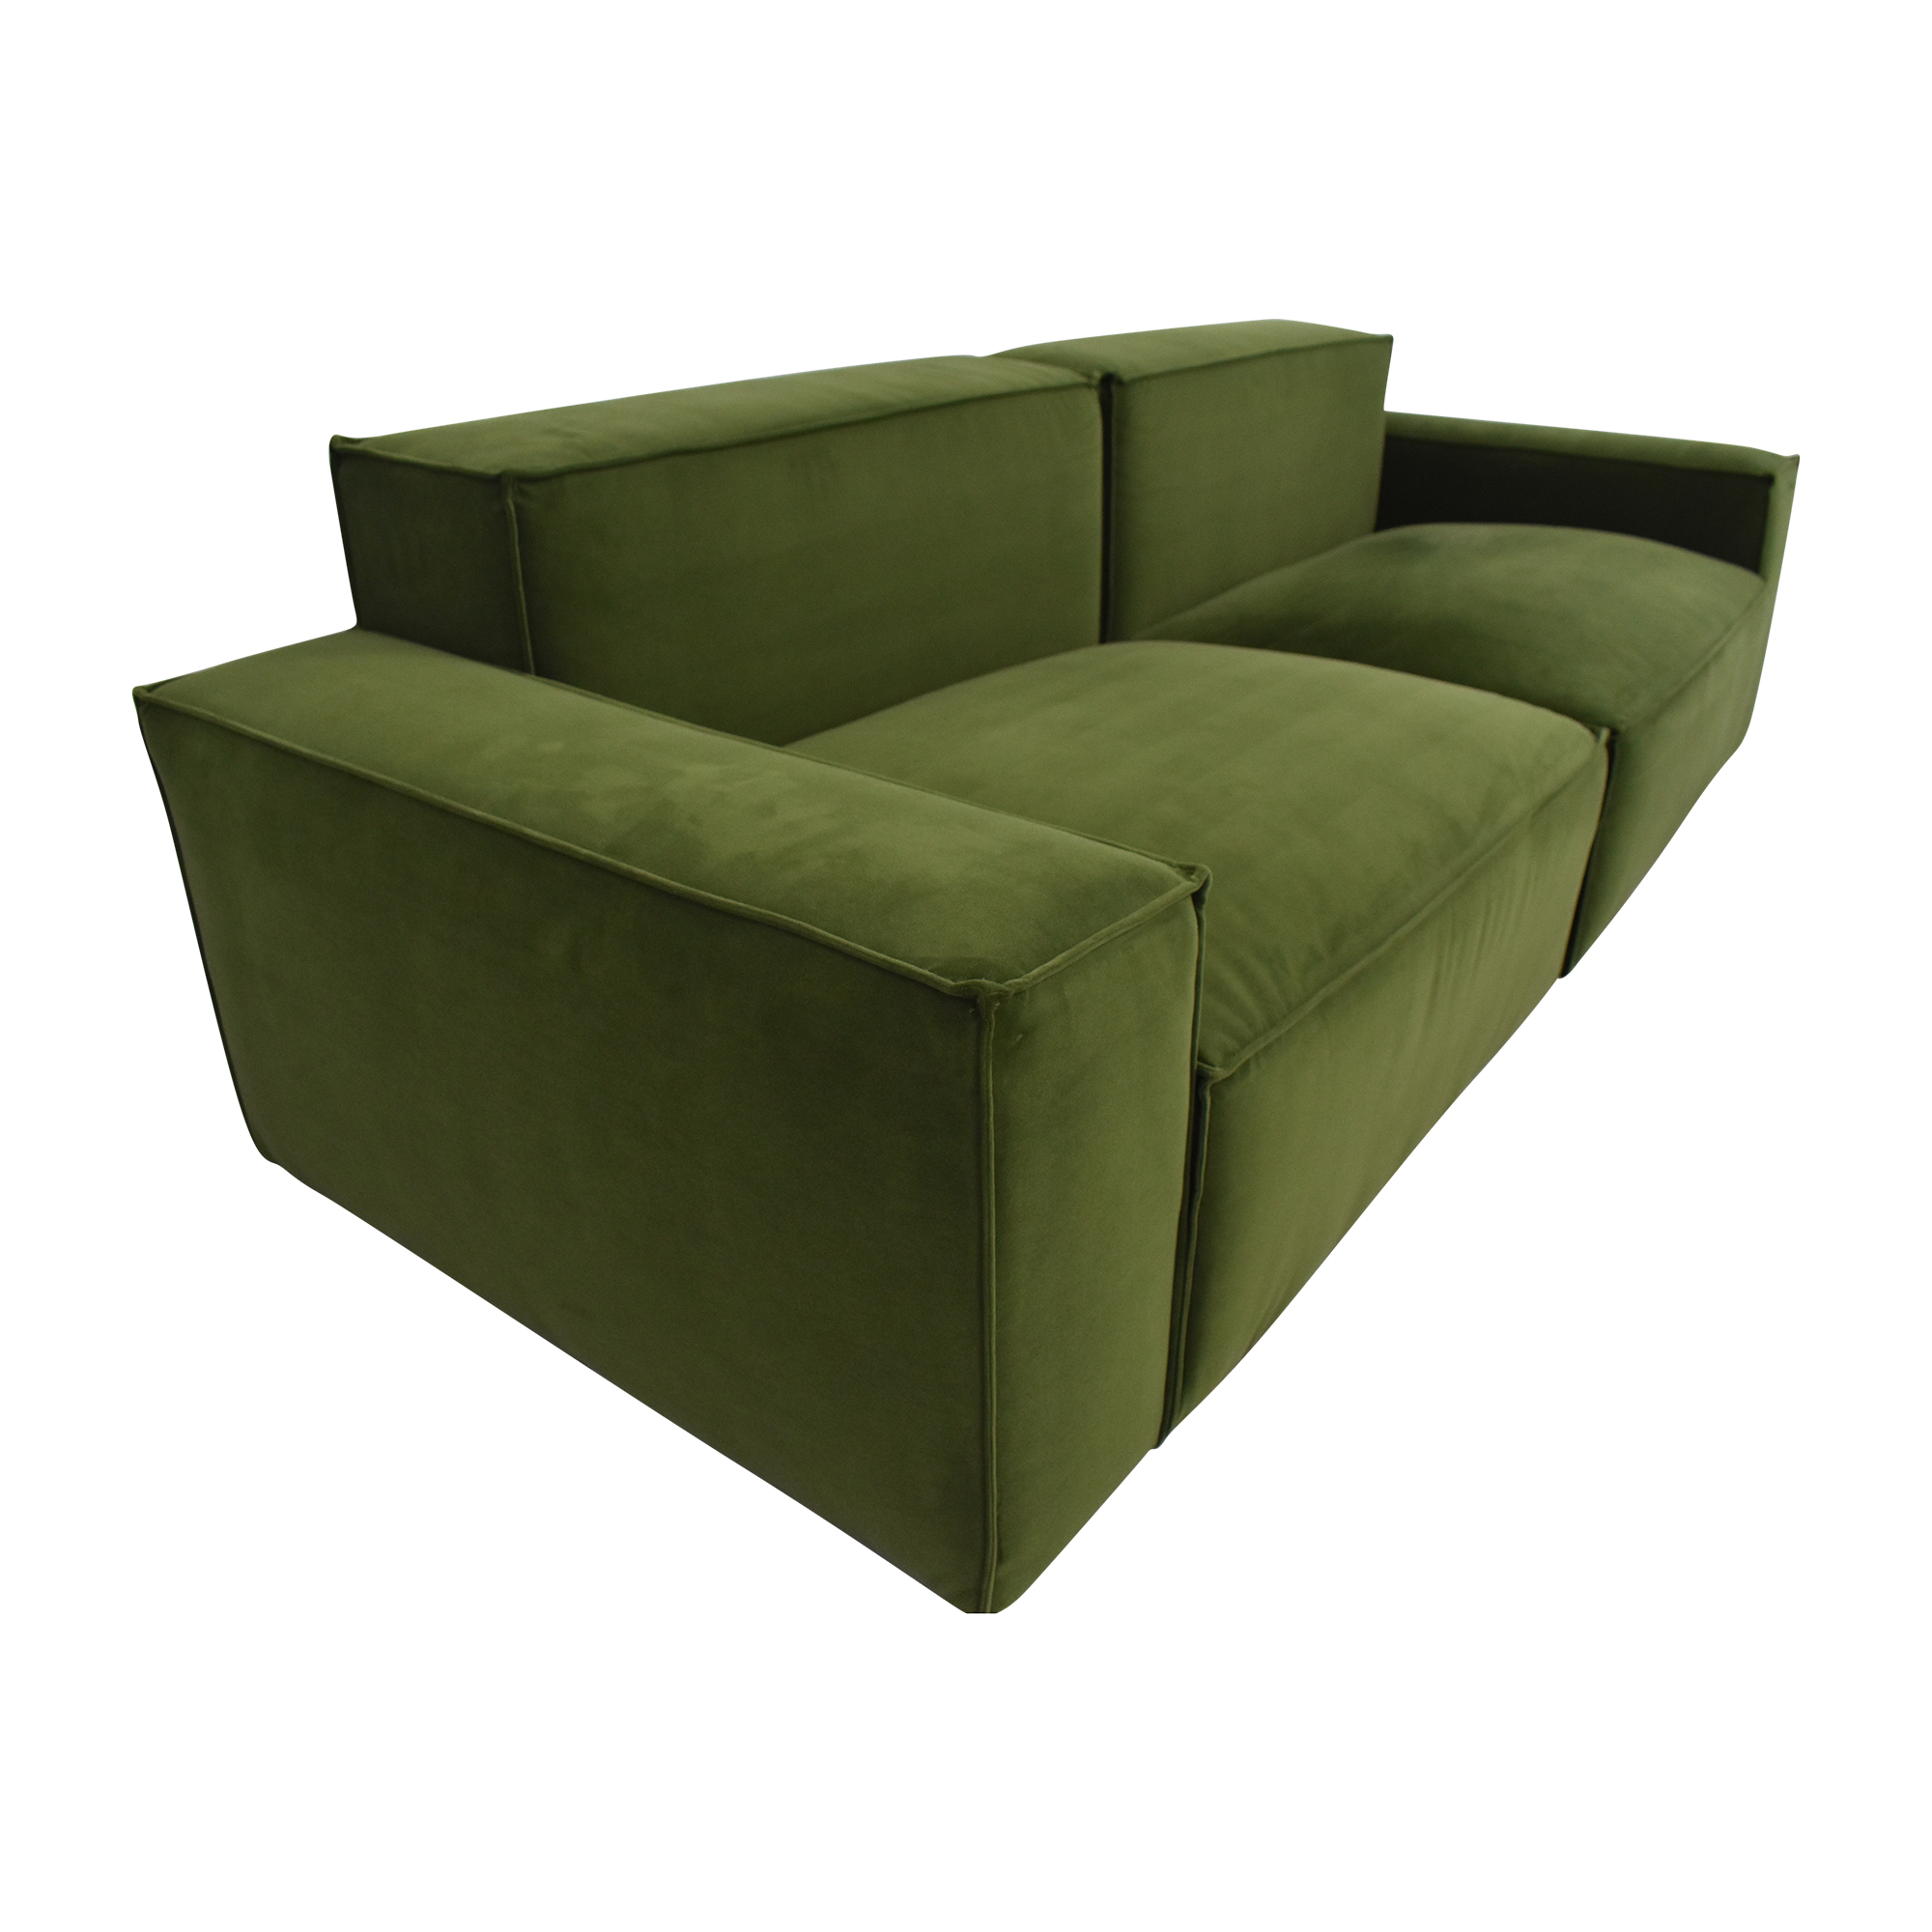 A.R.T. Furniture A.R.T. Raelyn Olafur Two Piece Modular Sectional Sofa second hand